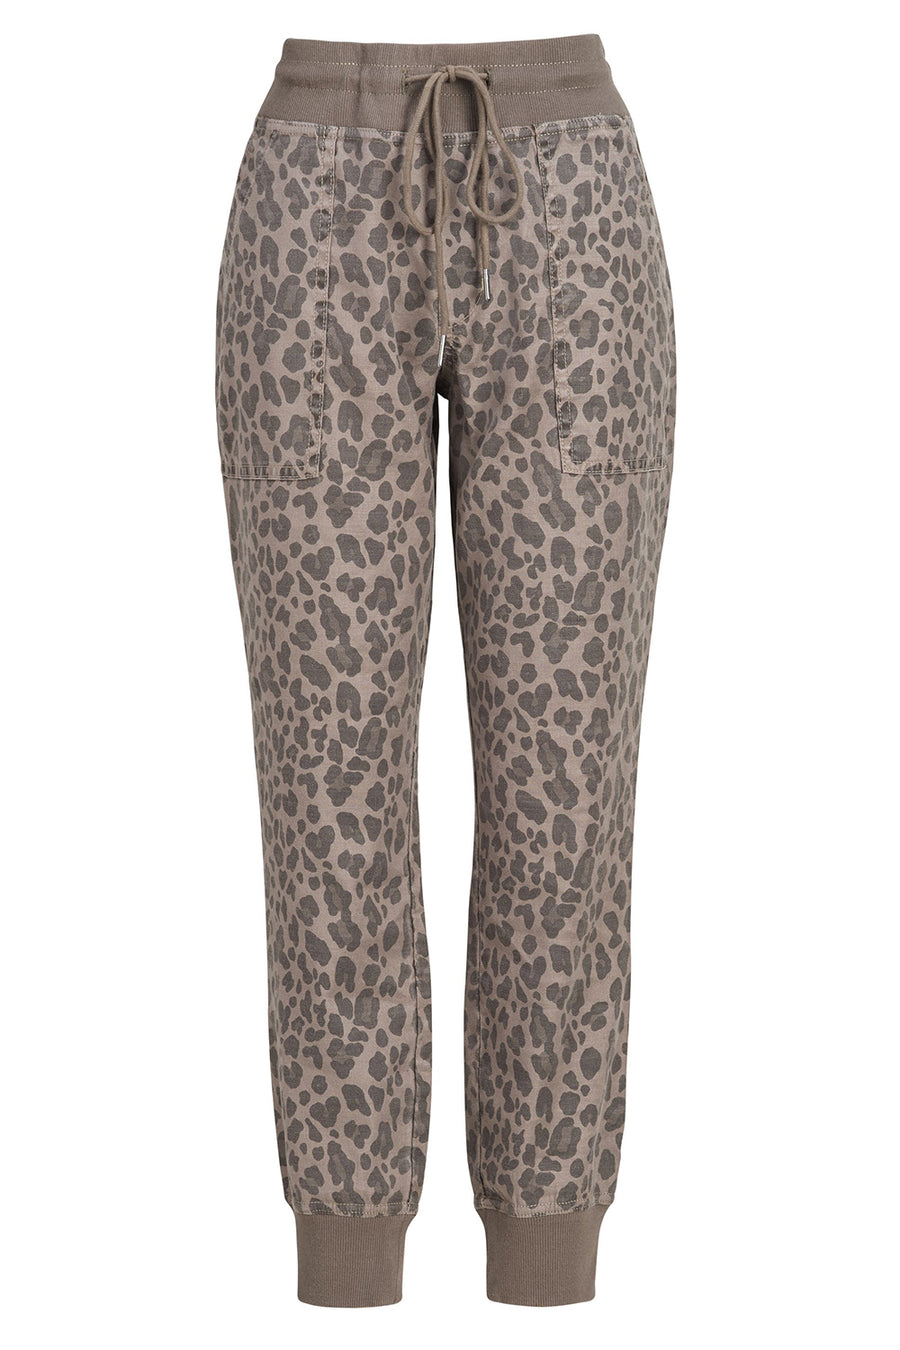 Gabrielle Wildcat Jogger - level99jeans